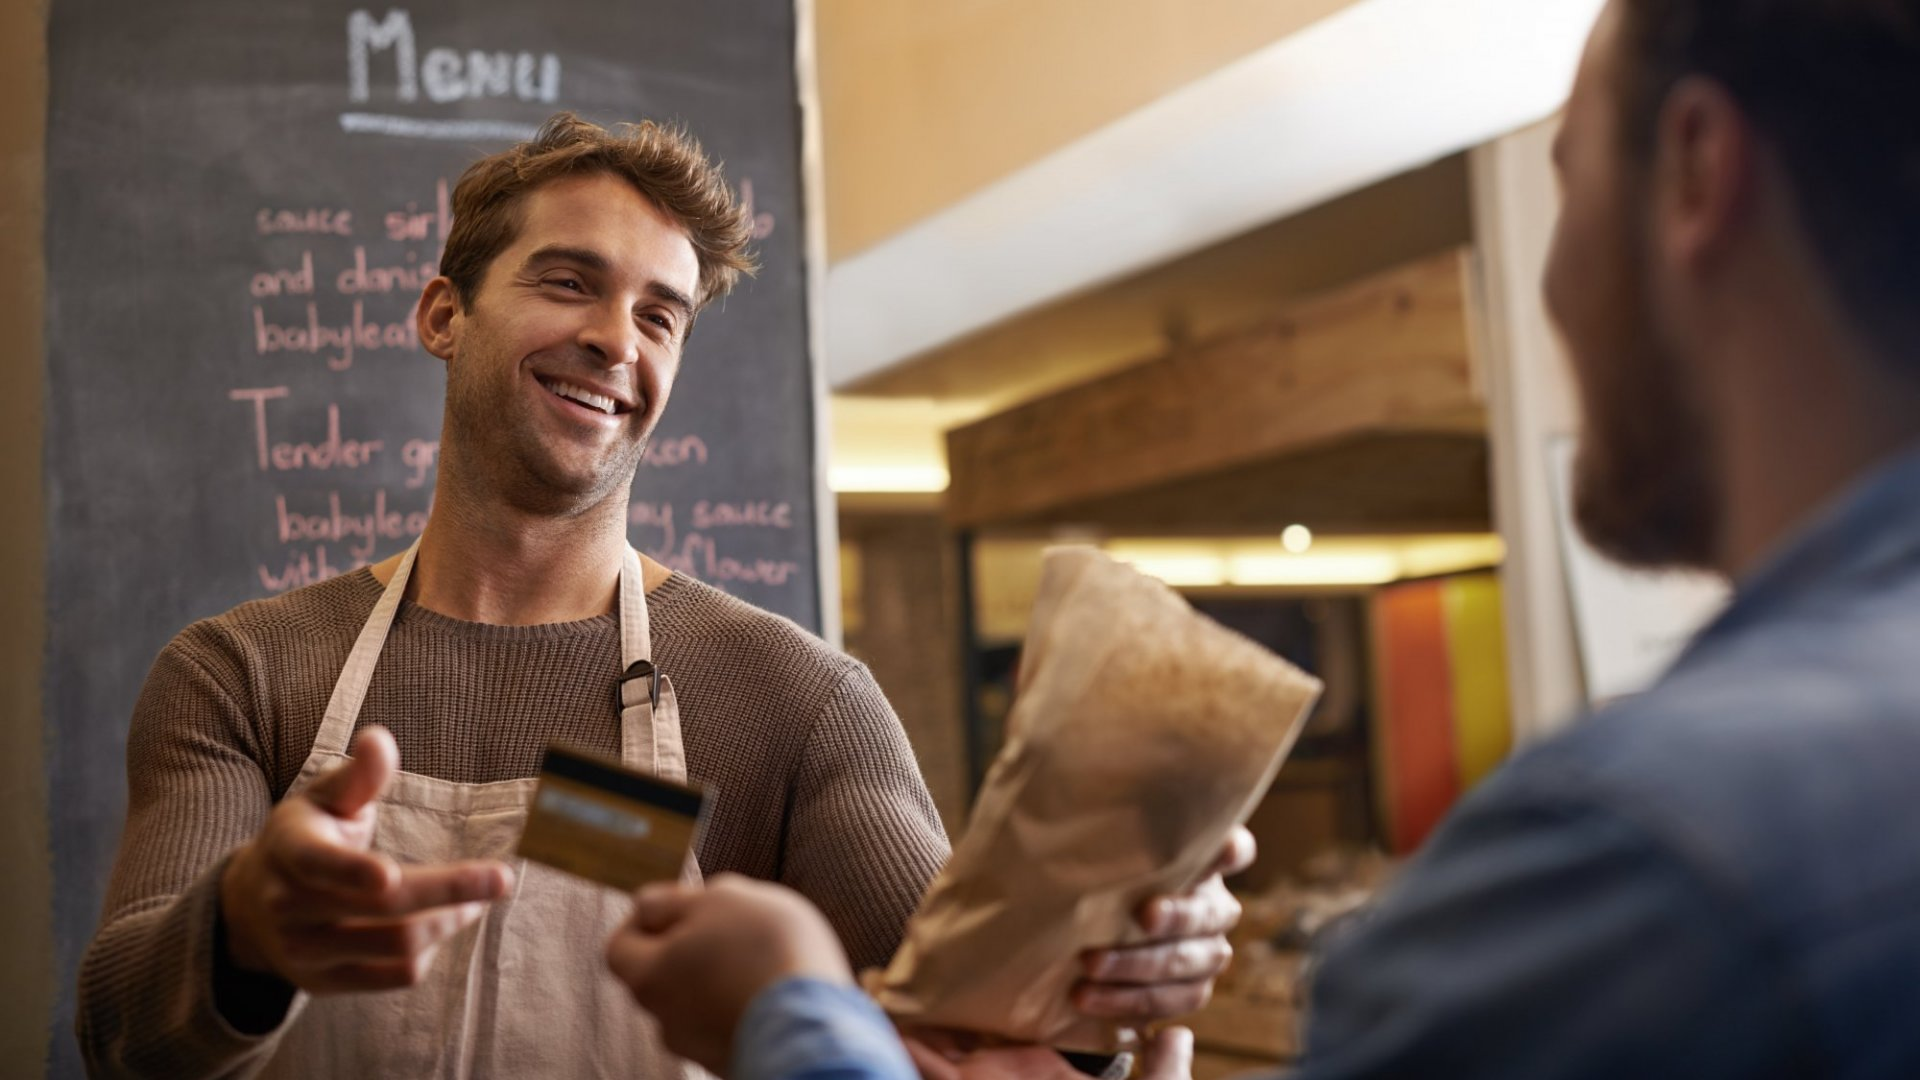 20 Genuine Gestures That Will Boost Your Business and Cost You Nothing